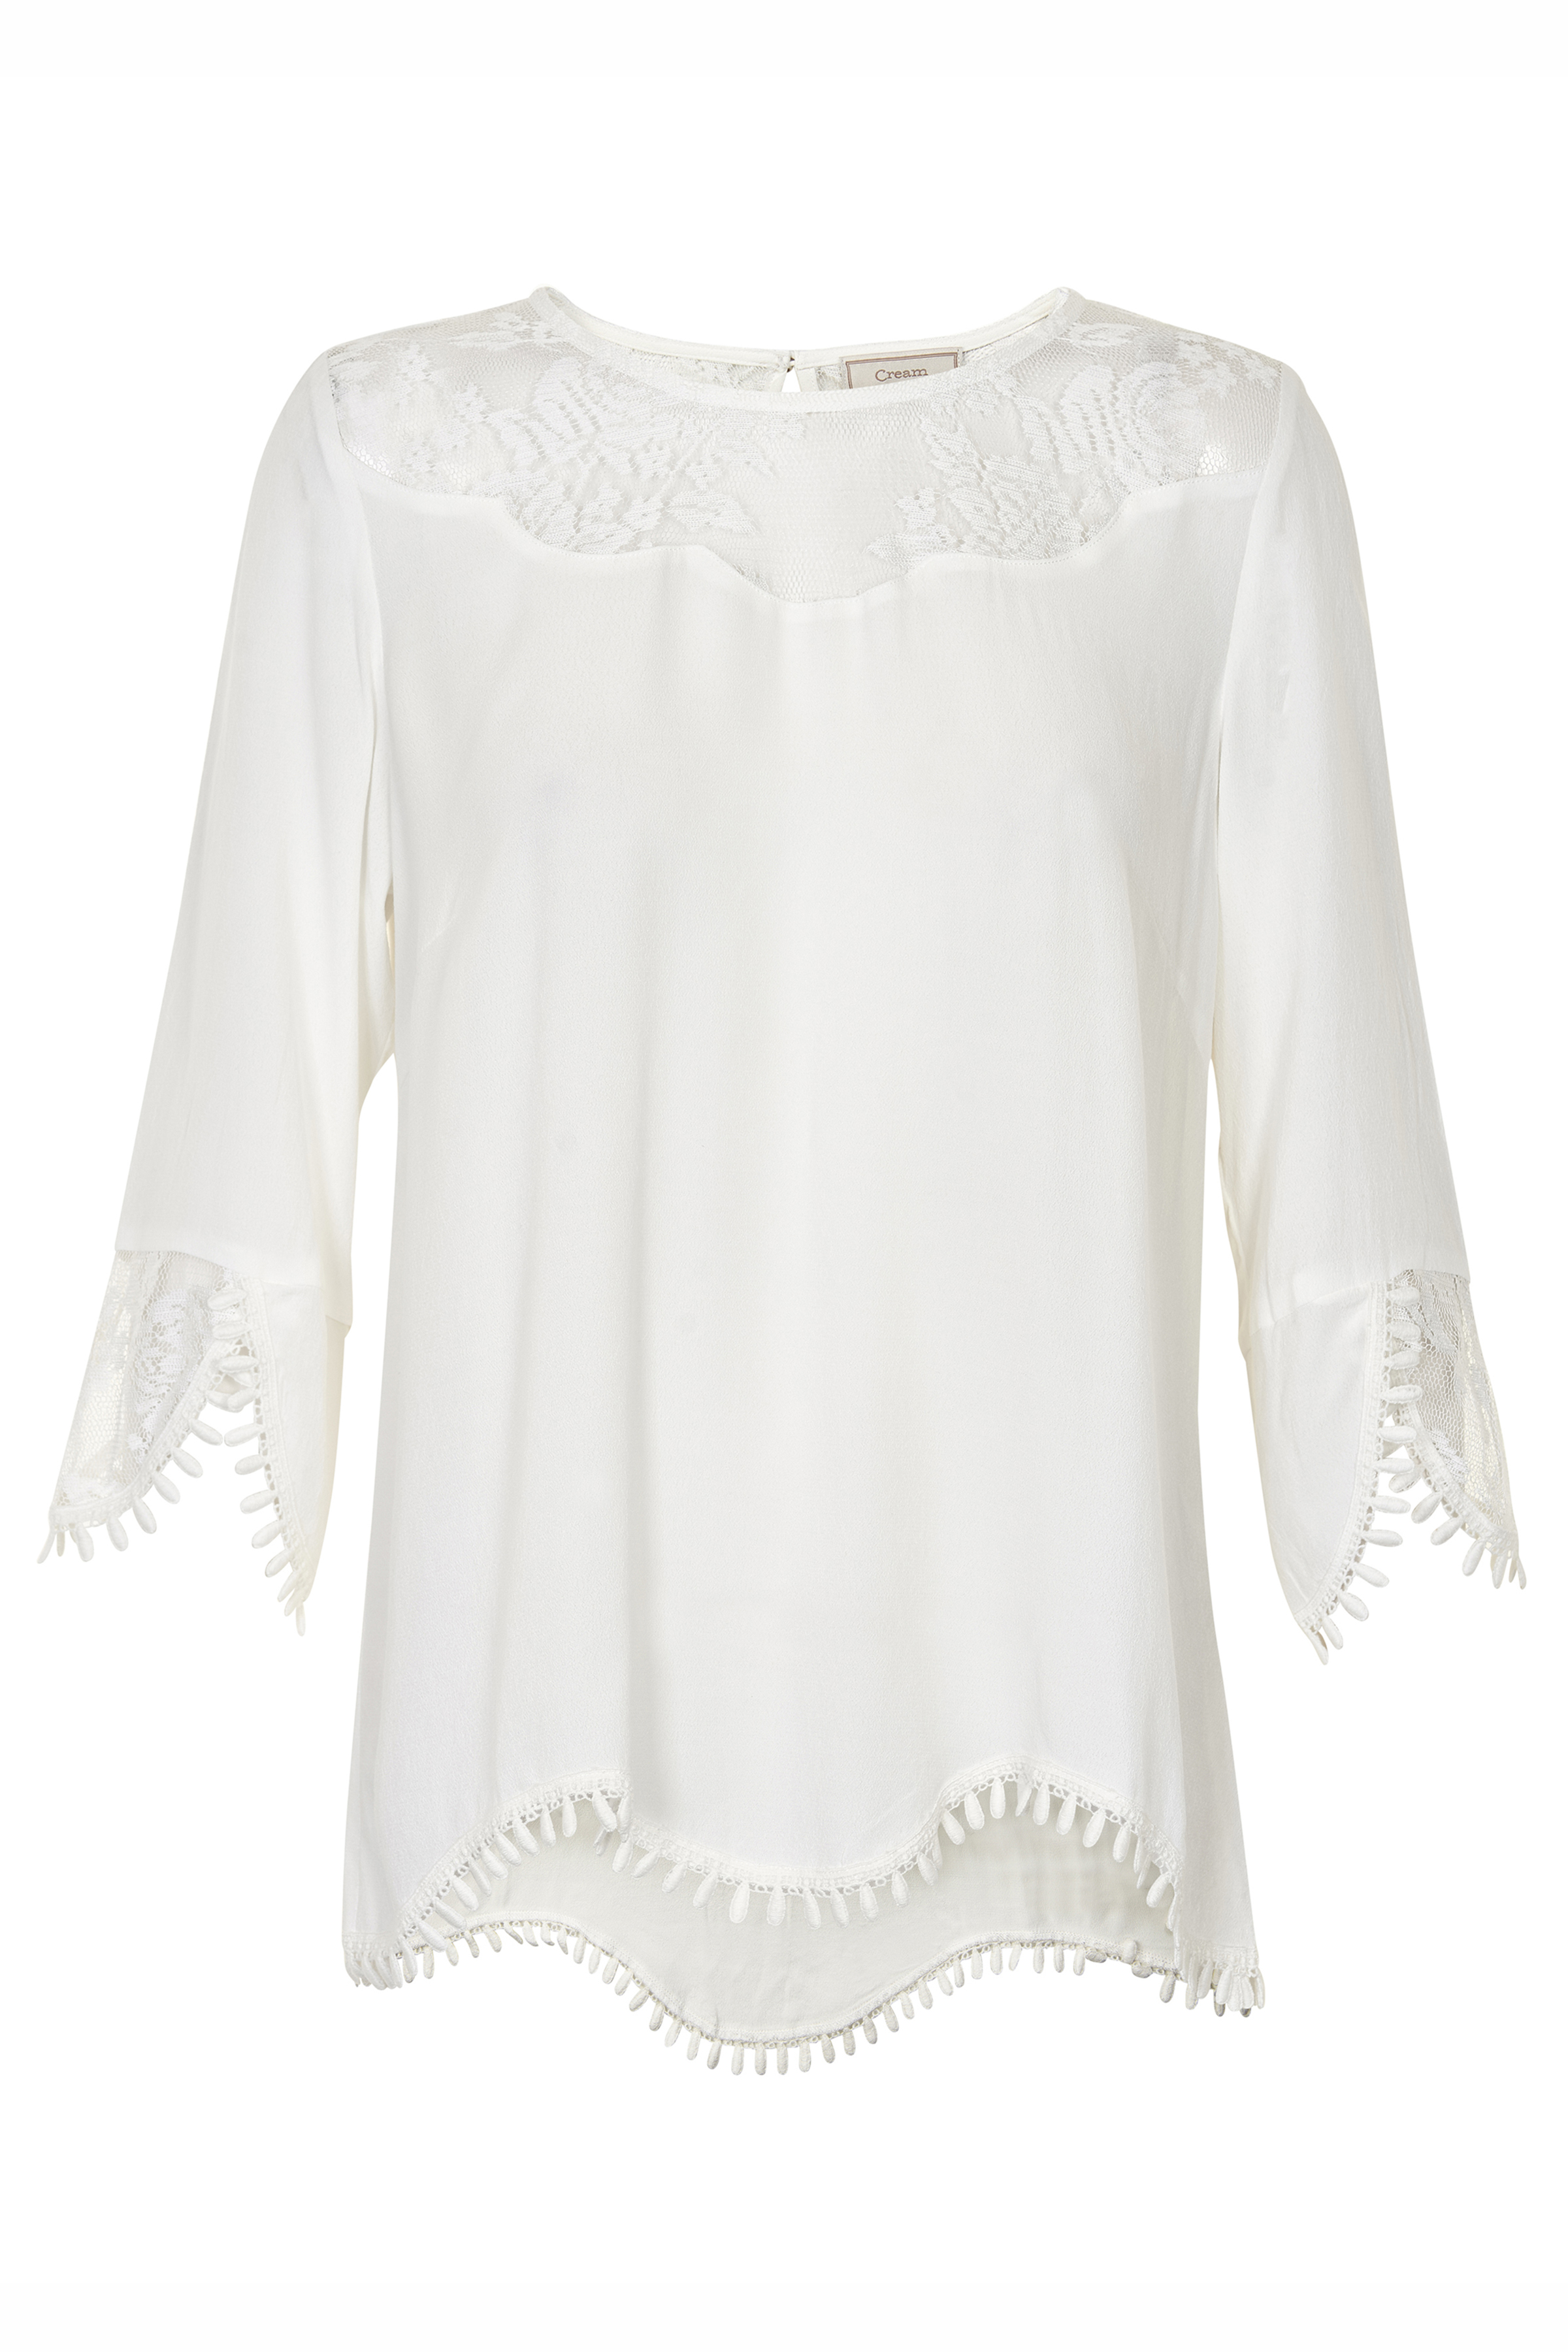 Image of Cream Dame Bluse - Off-white